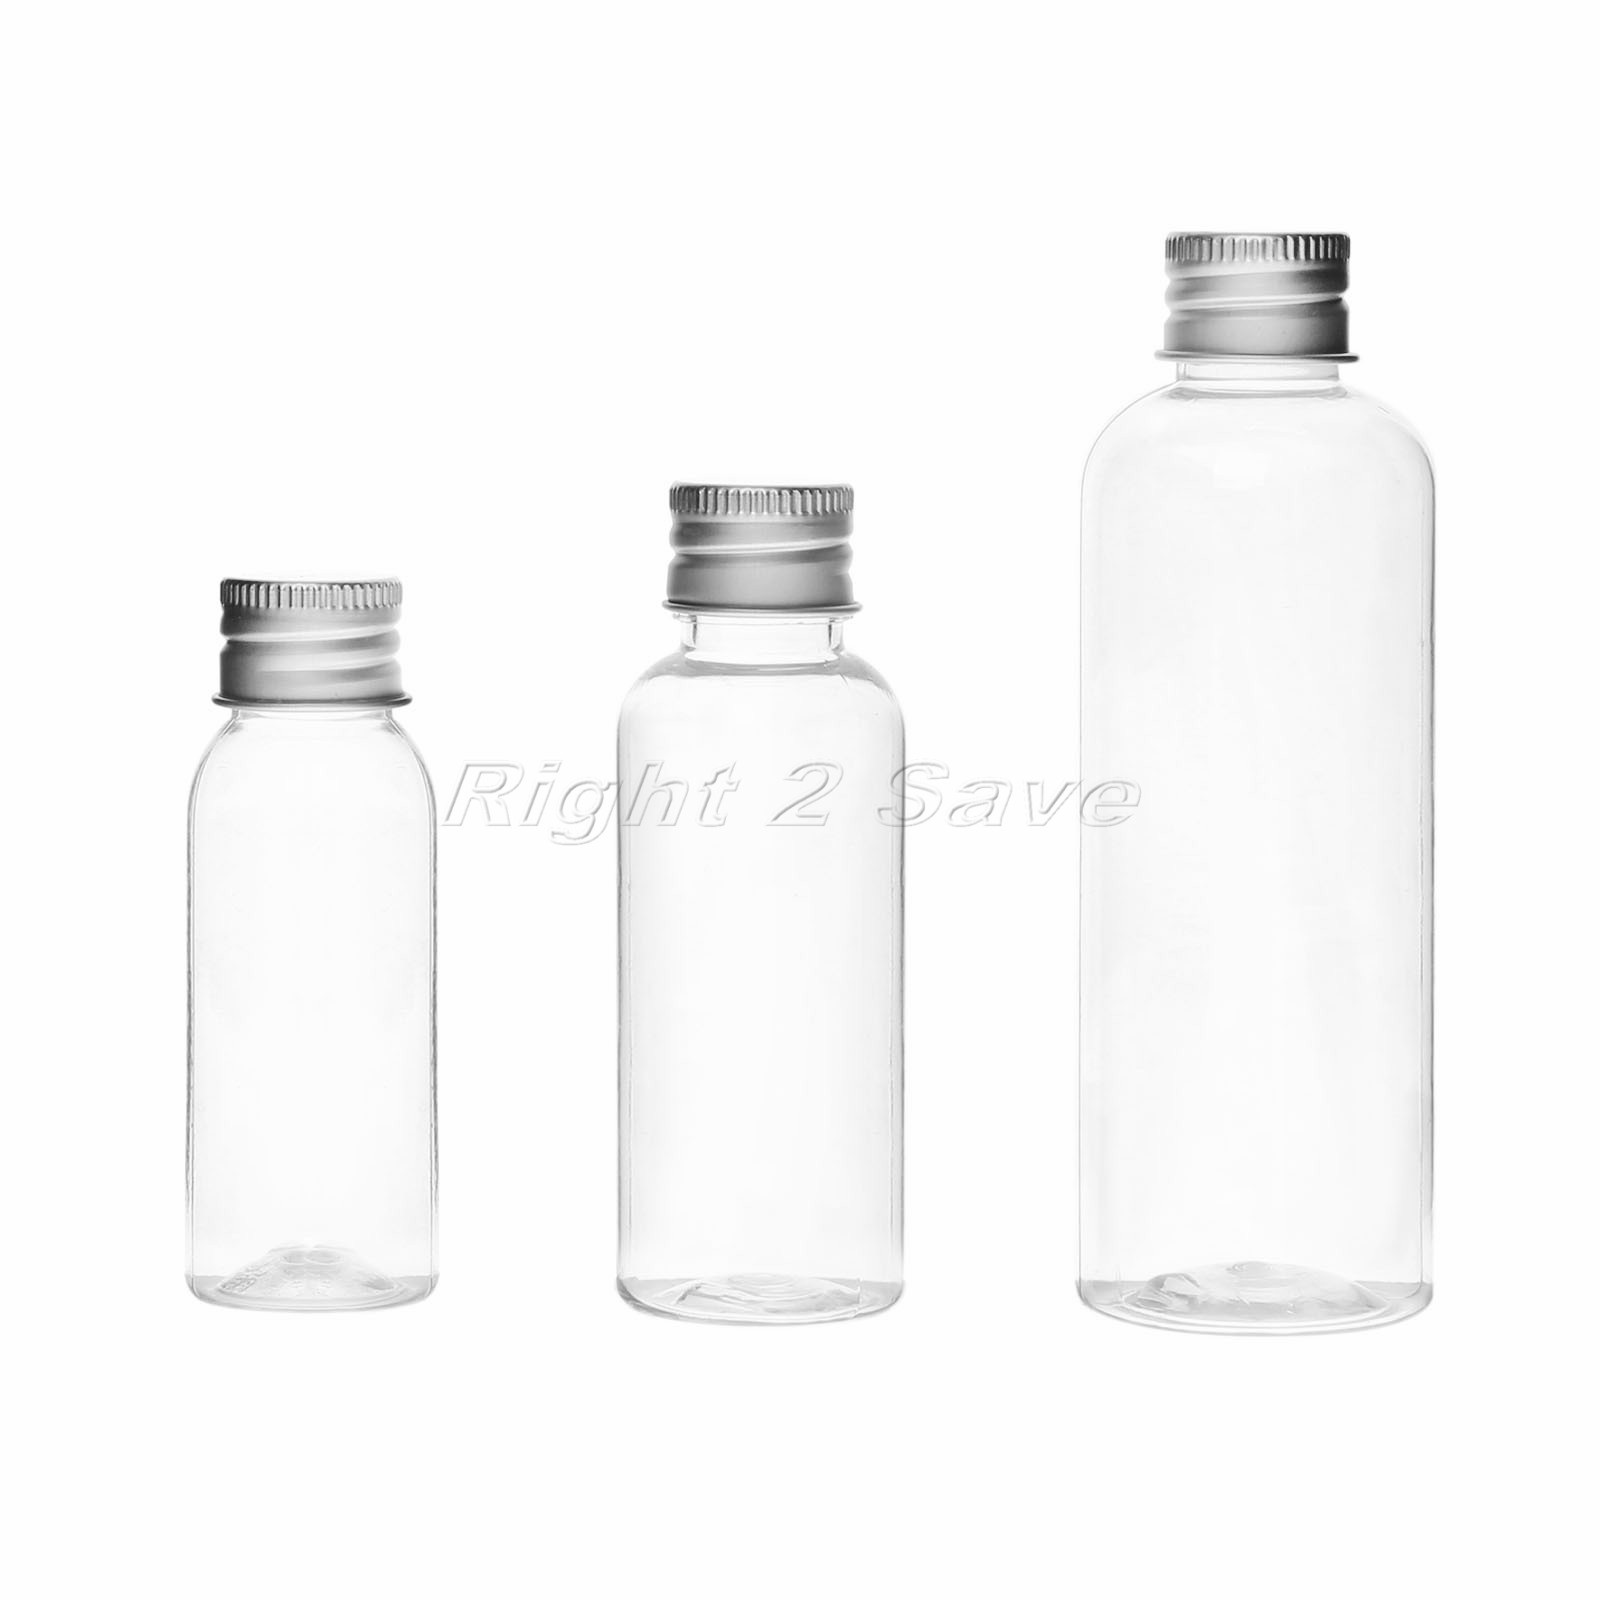 5PCS 30ML/50ML/100ML Plastic Bottle With Aluminum Screw Cap Plug Cosmetic Container Travel Kits Portable PET Lotion Cream